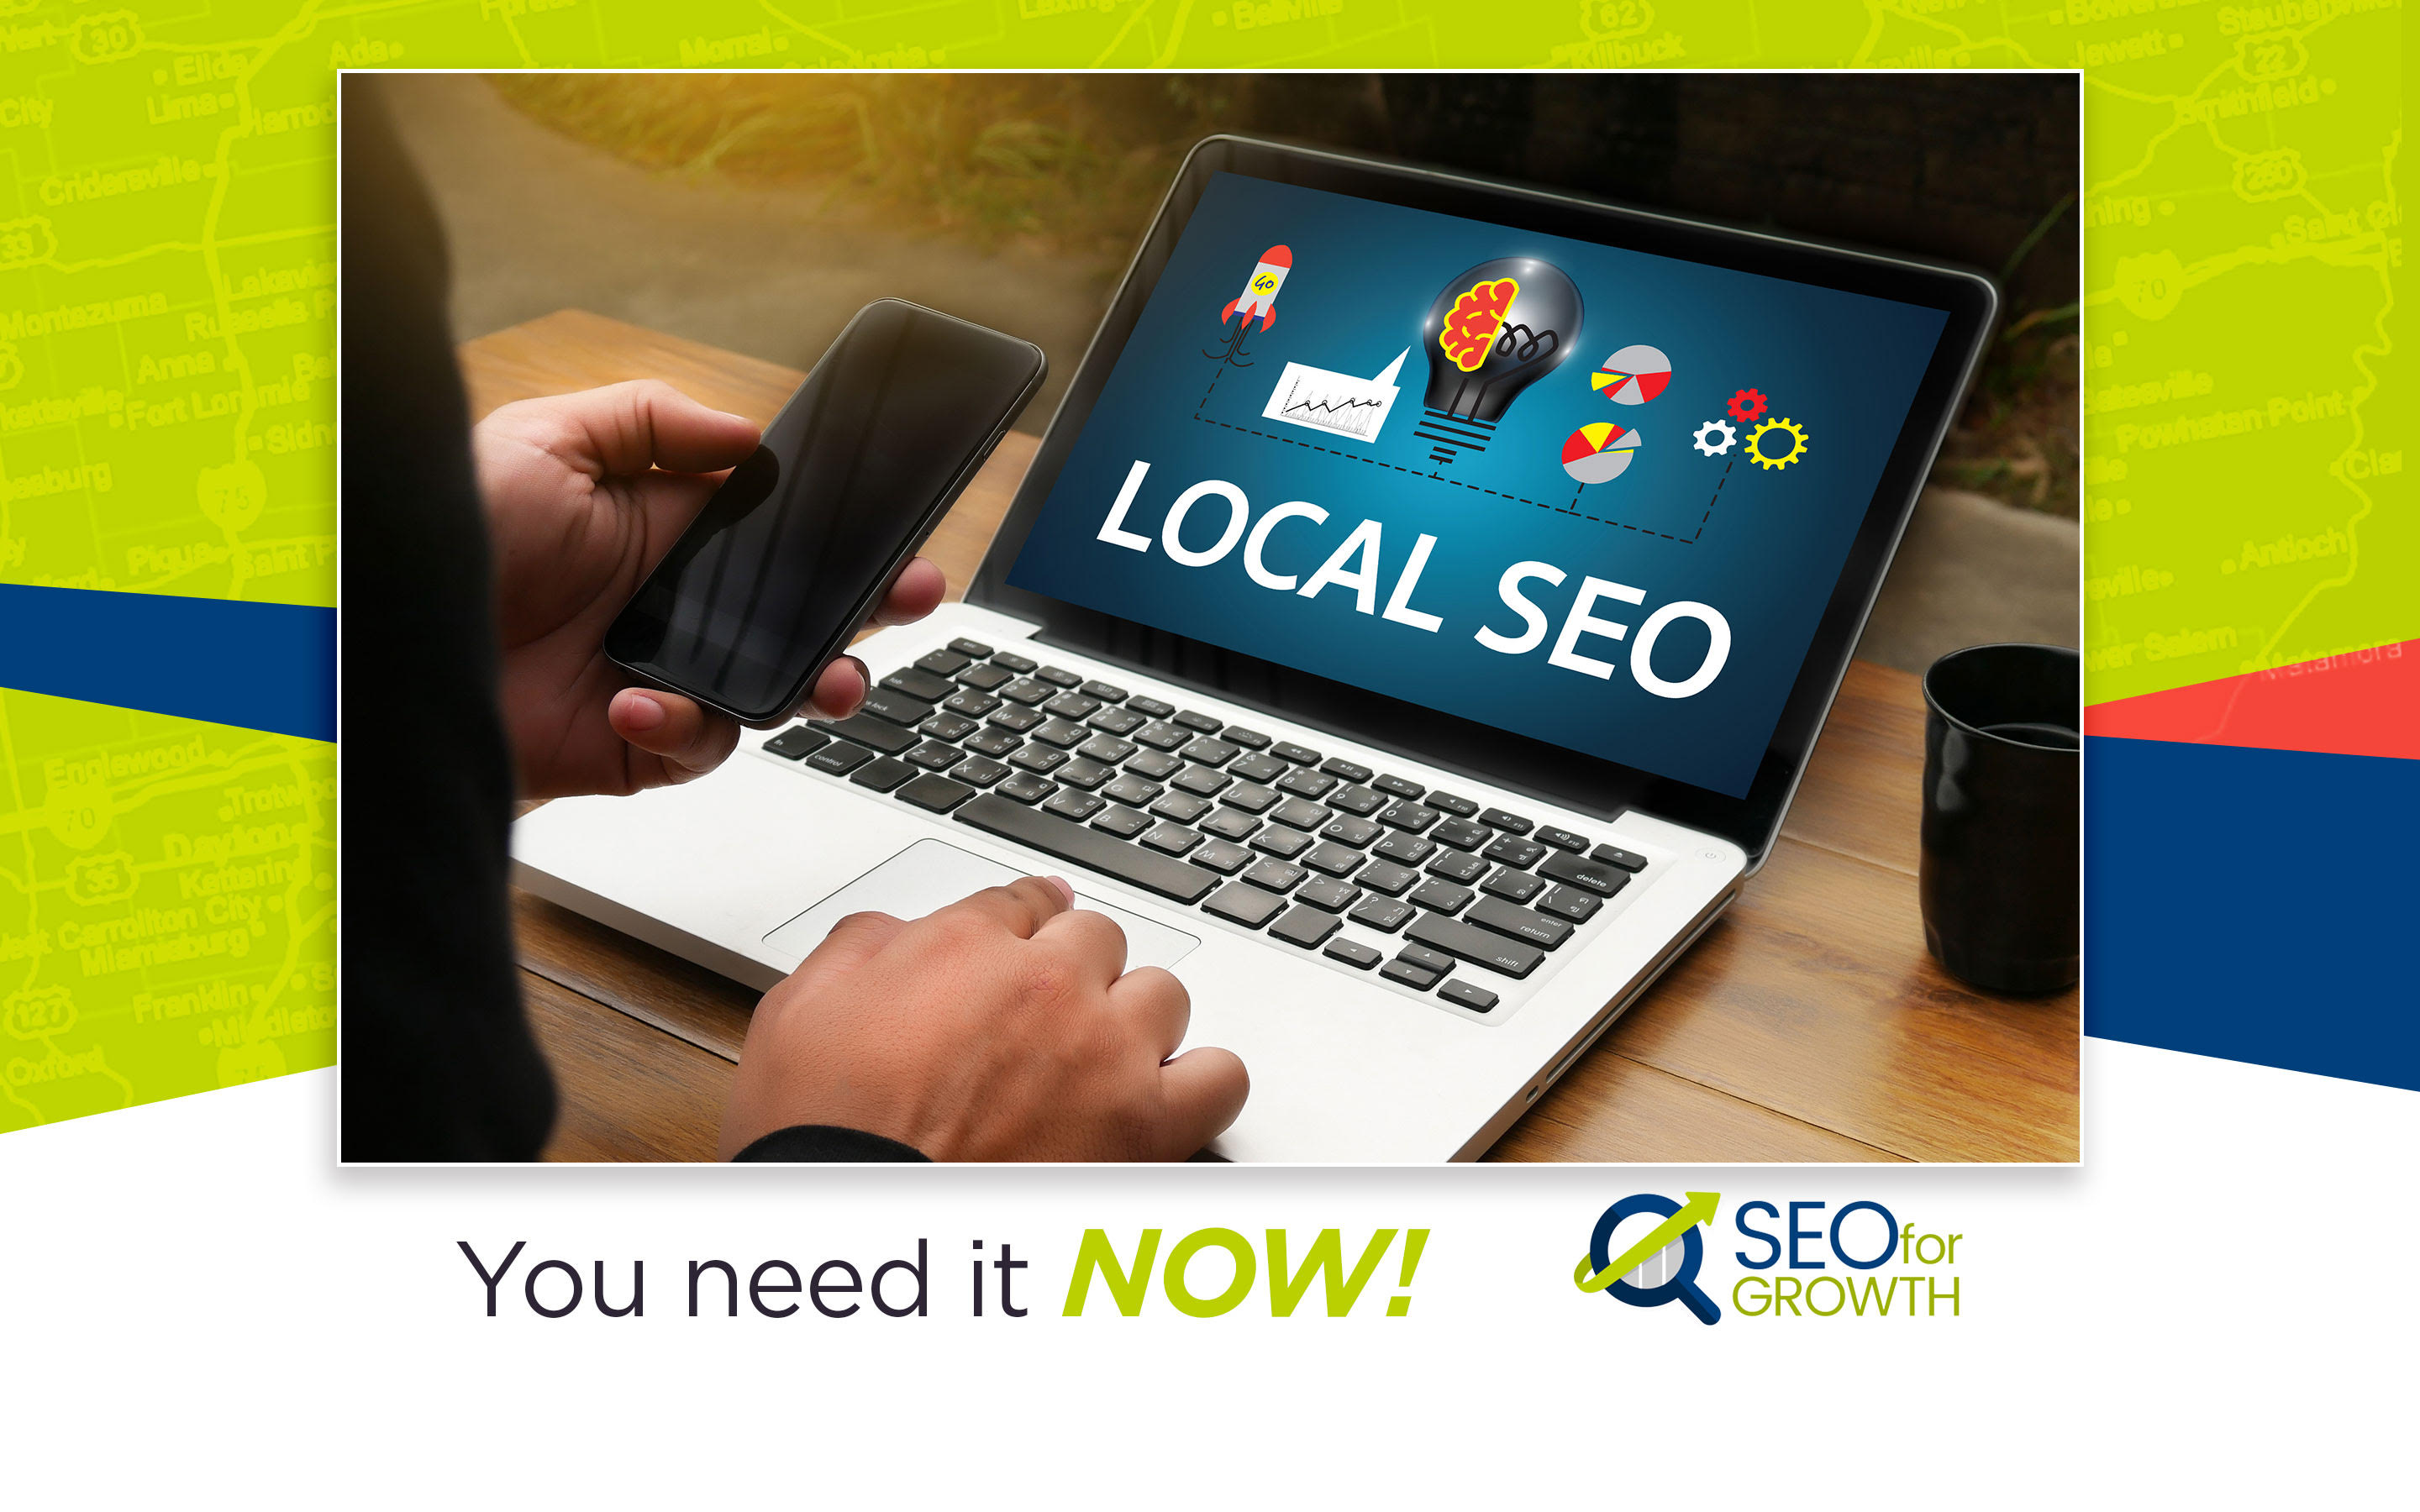 Local Search: Why You Need to Invest Now!